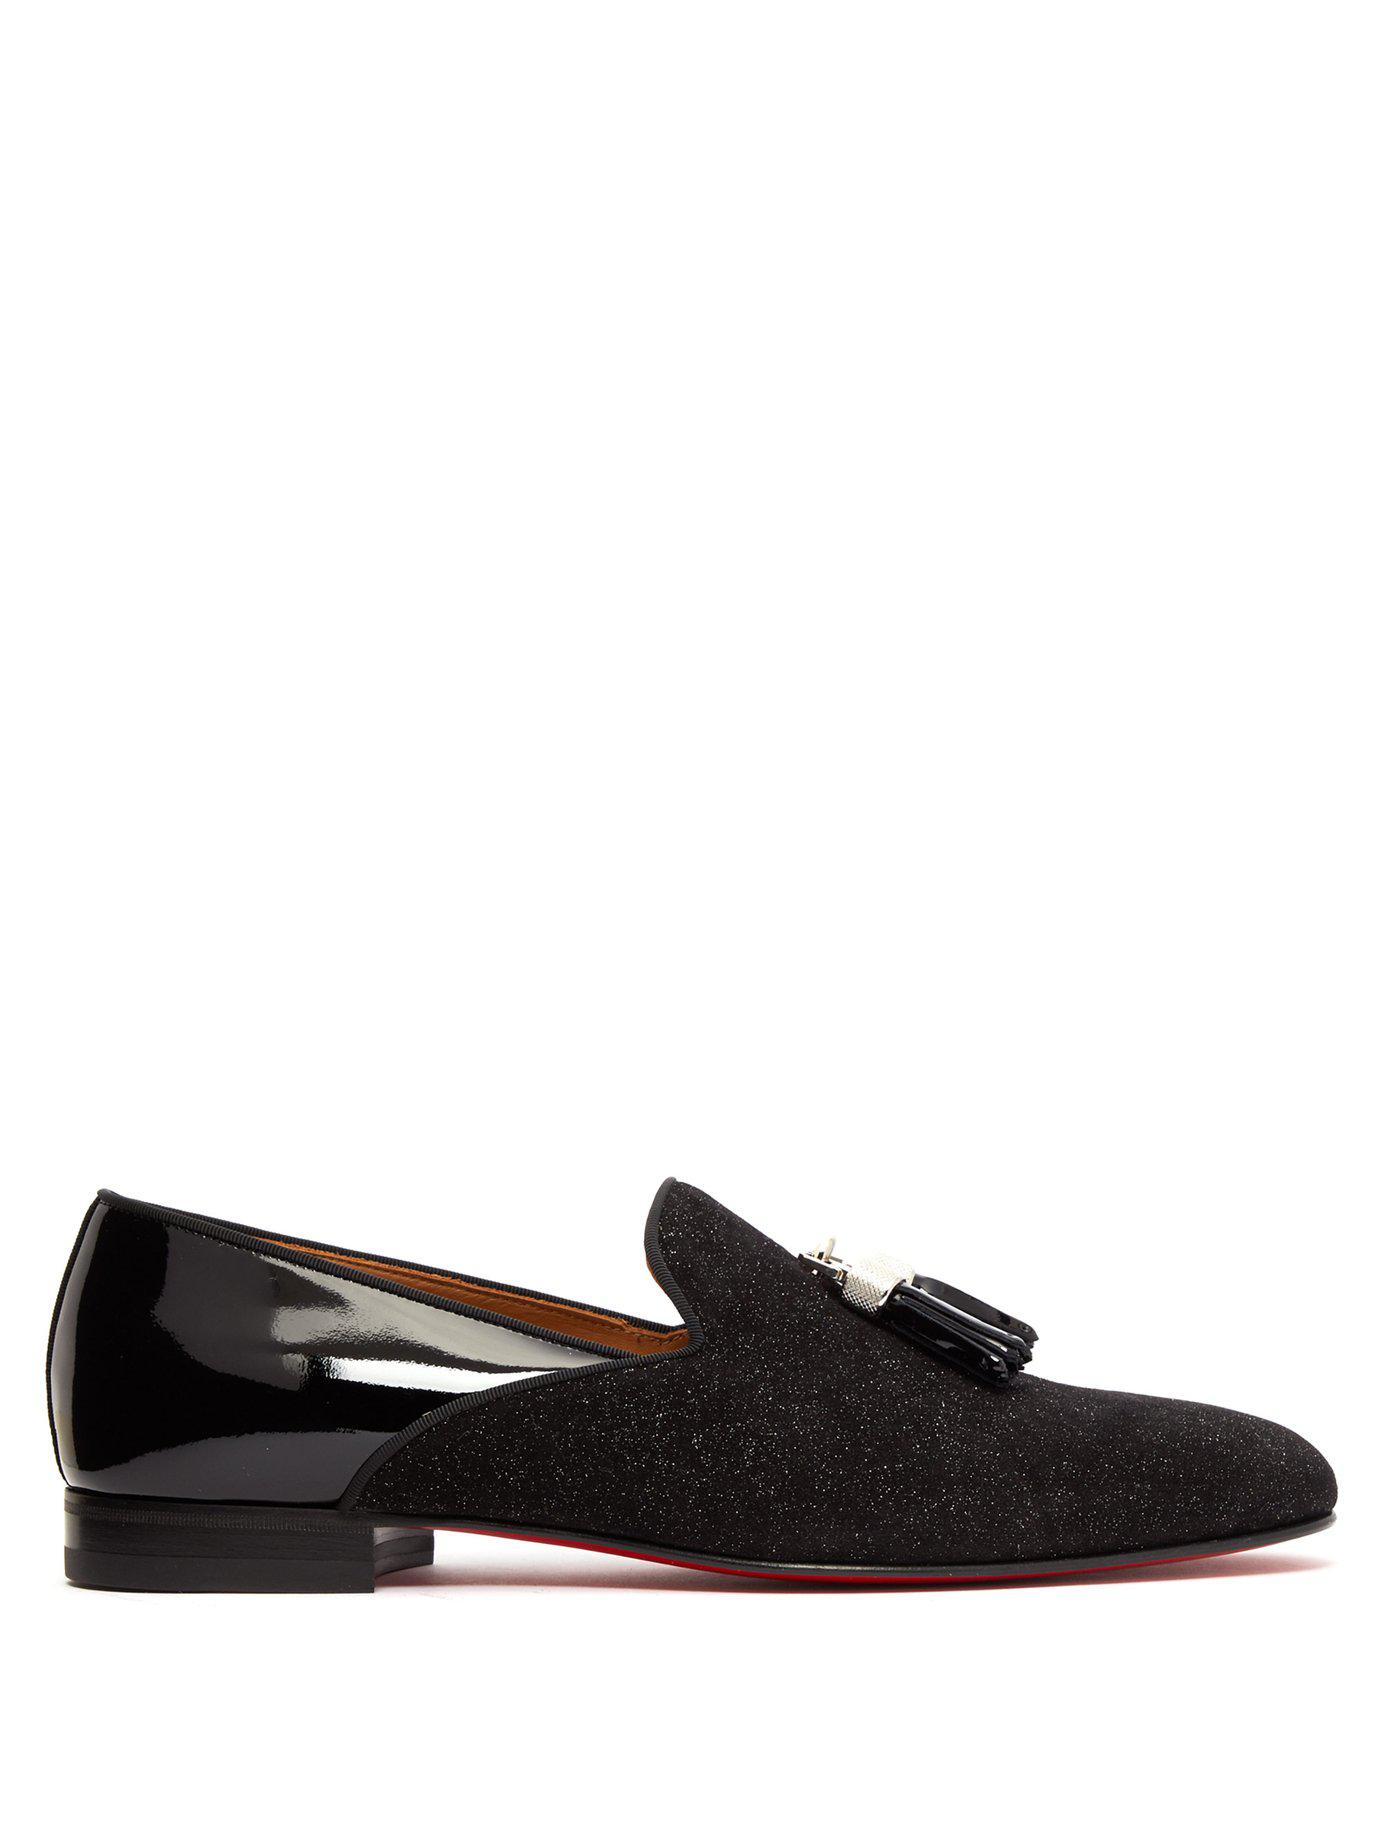 ddfced7c5a7 Lyst - Christian Louboutin Tassileon Patent Leather Loafers in Black ...